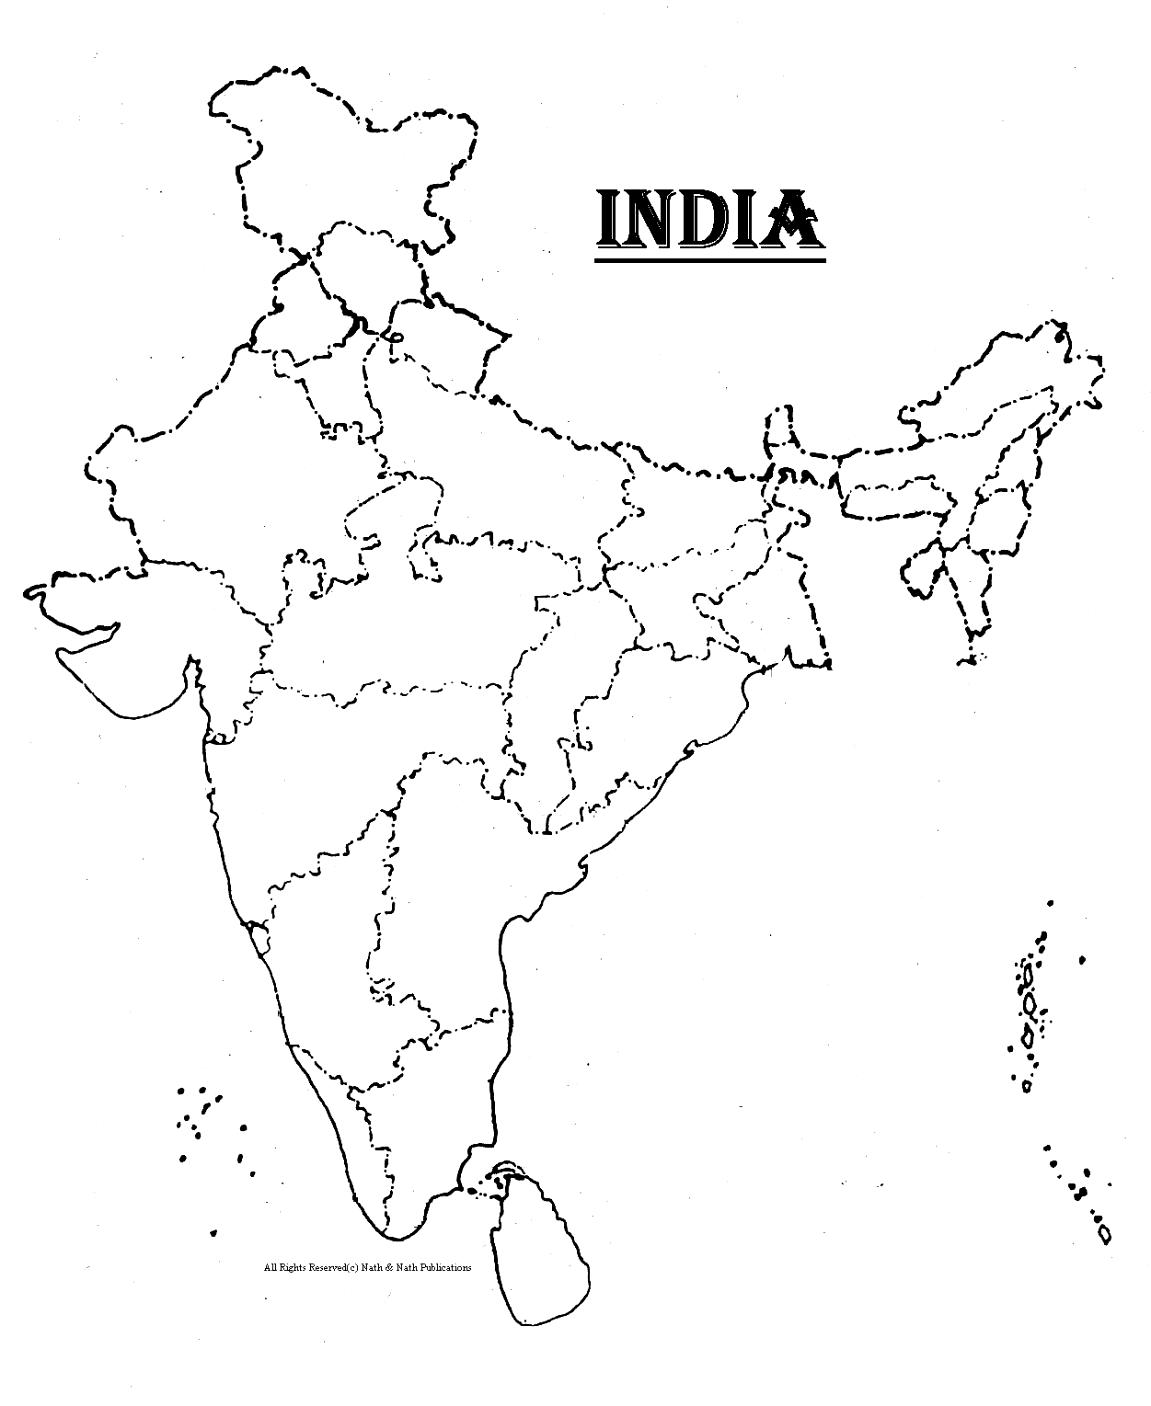 printable outline map of india india map silhouette free vector silhouettes india of outline printable map